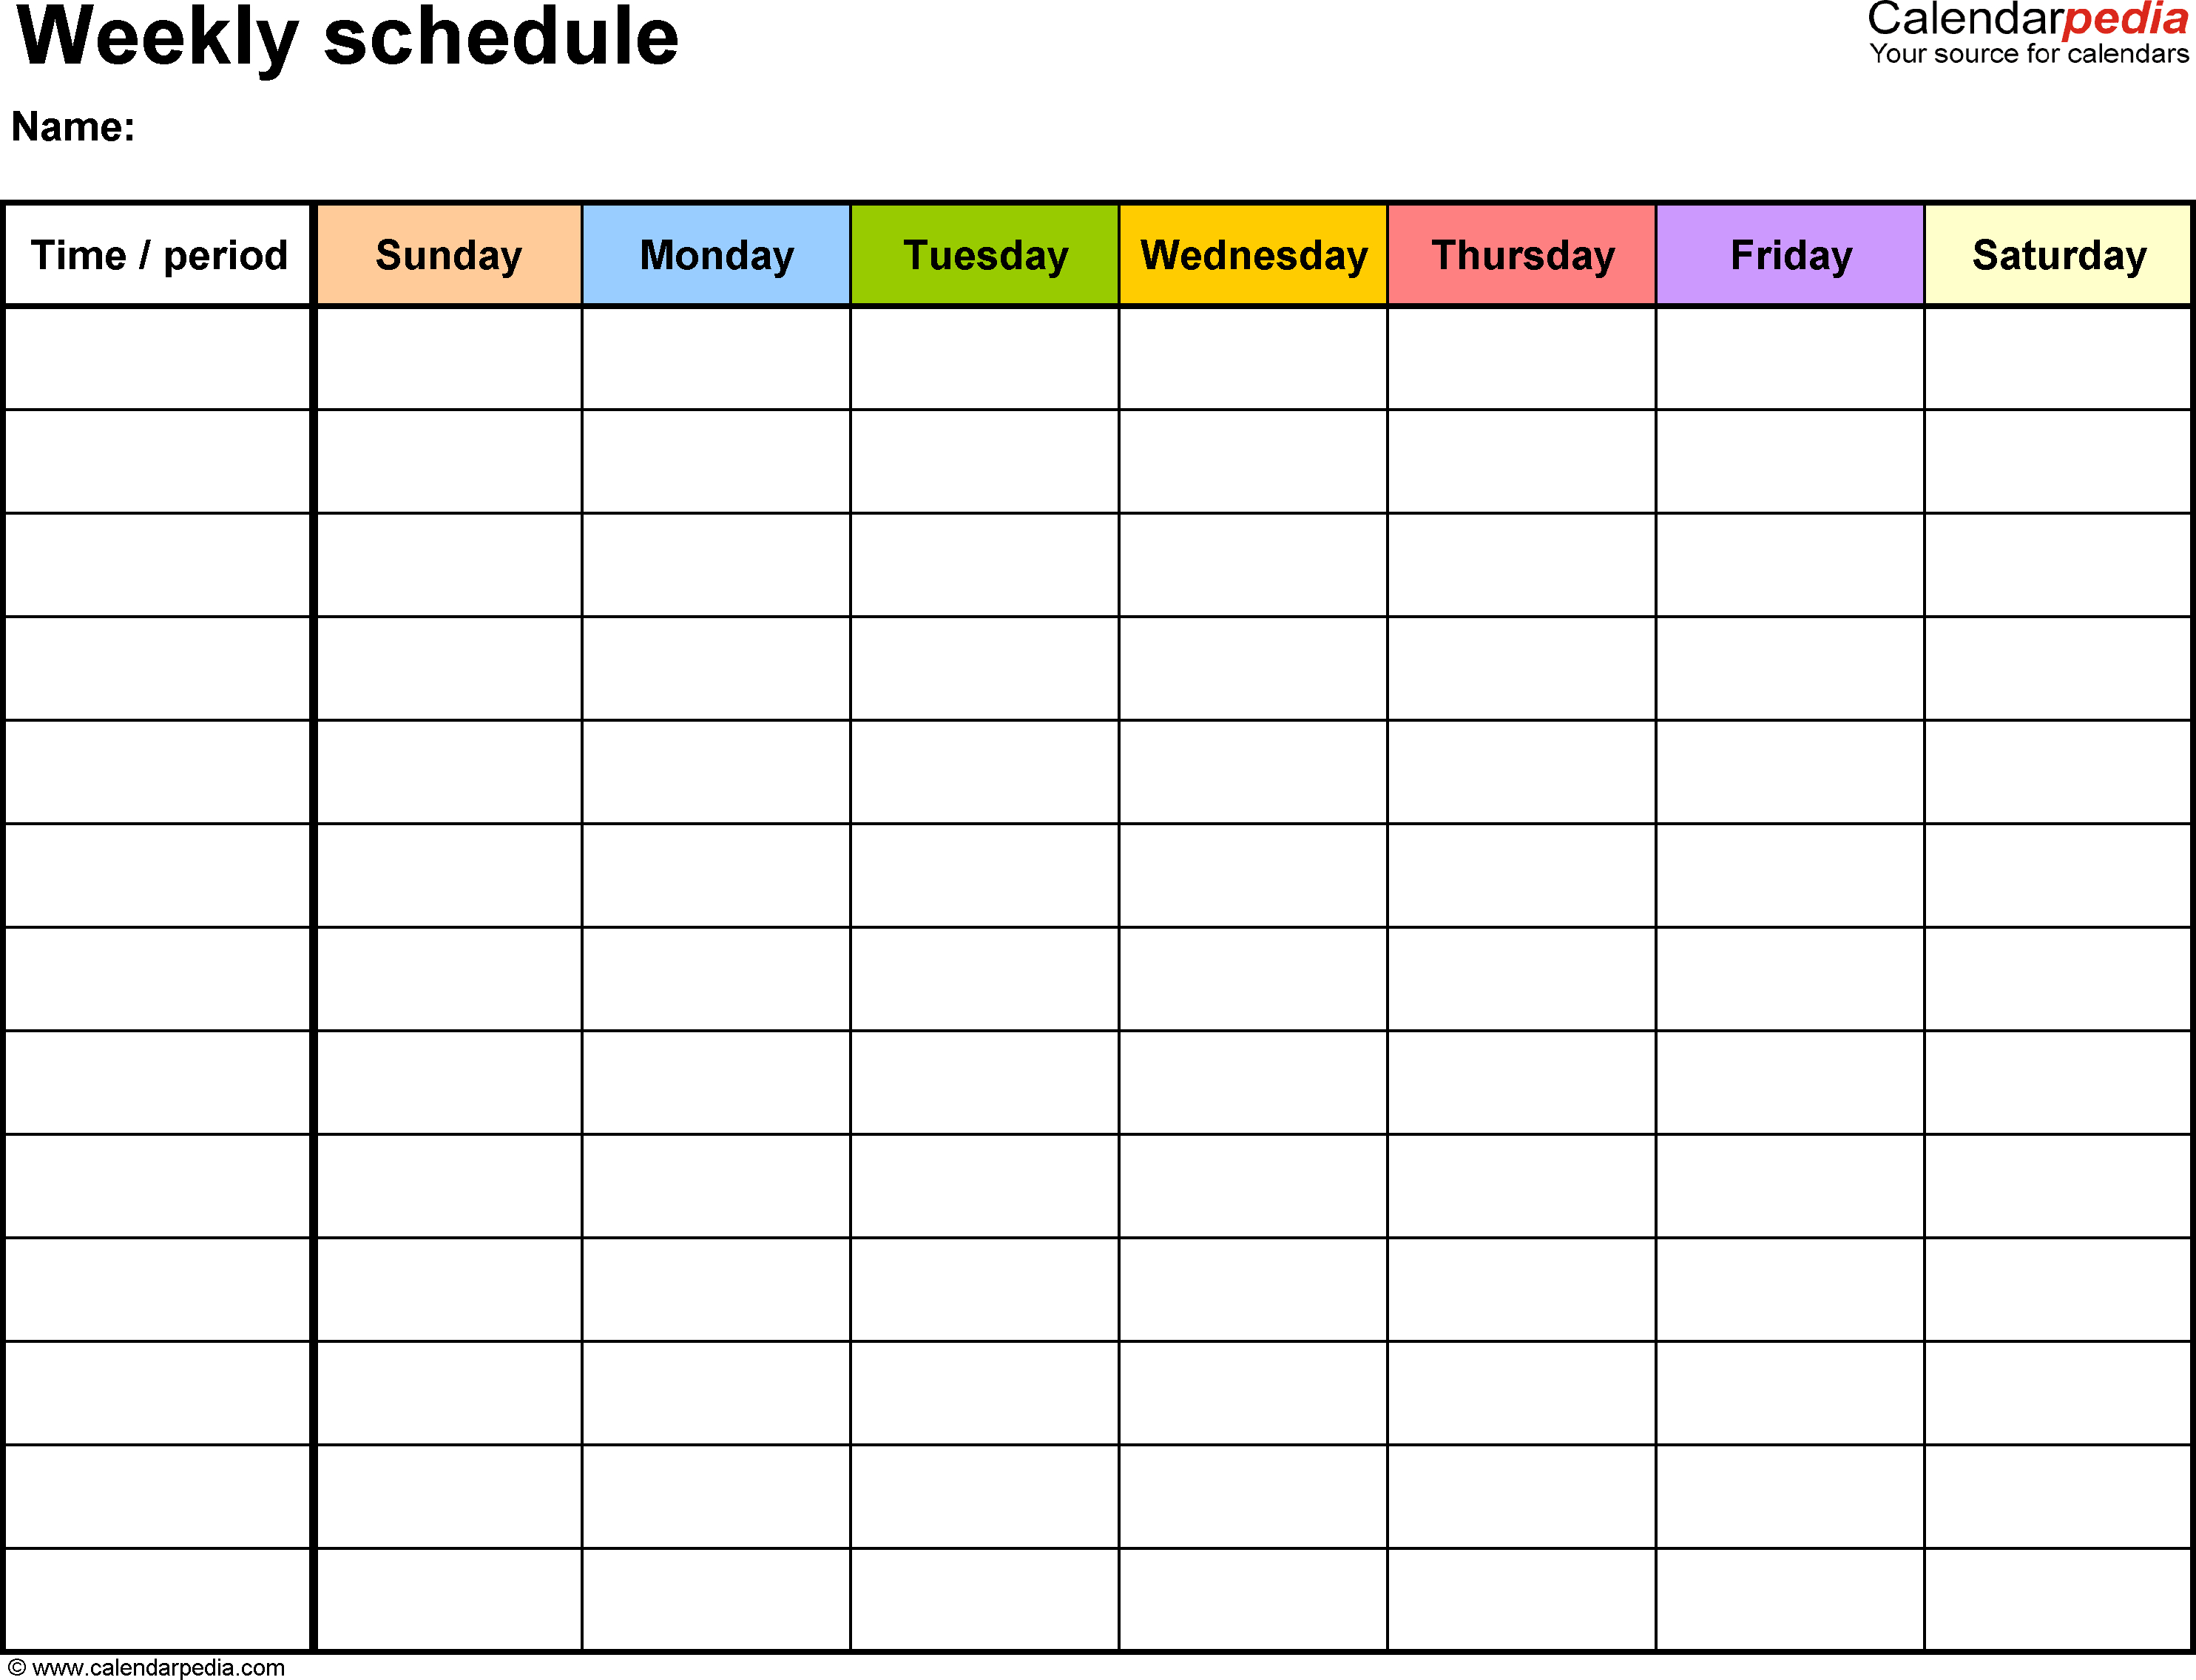 Weekly Schedule Template For Word Version 13: Landscape, 1 Free Fillable Weekly Schedule Templates